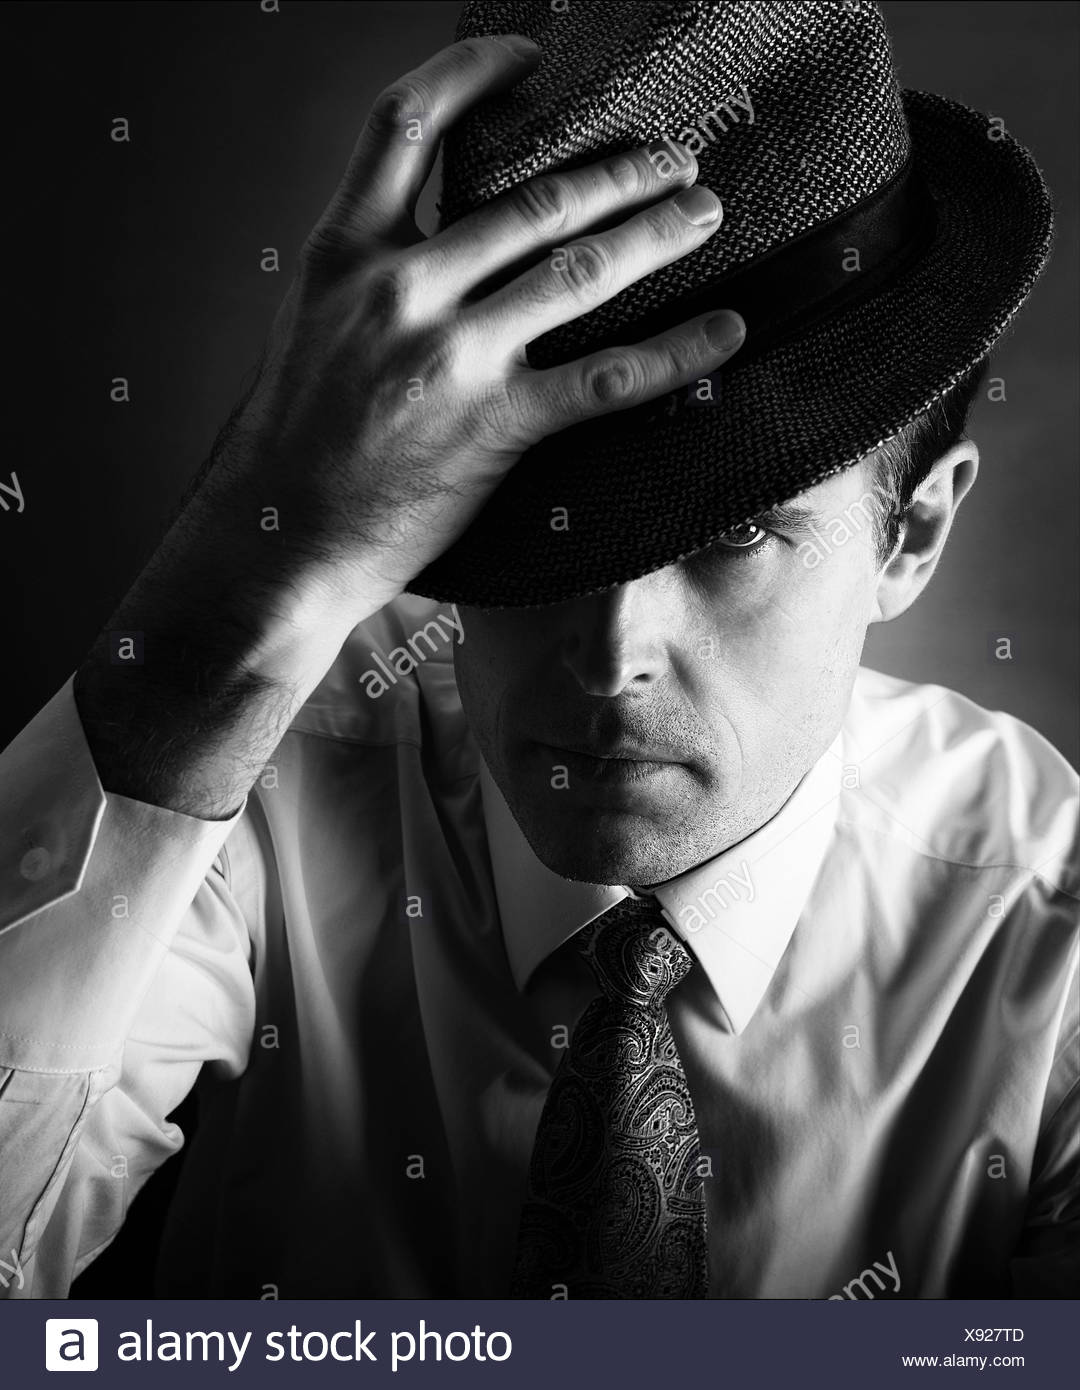 Man with hand on hat - Stock Image